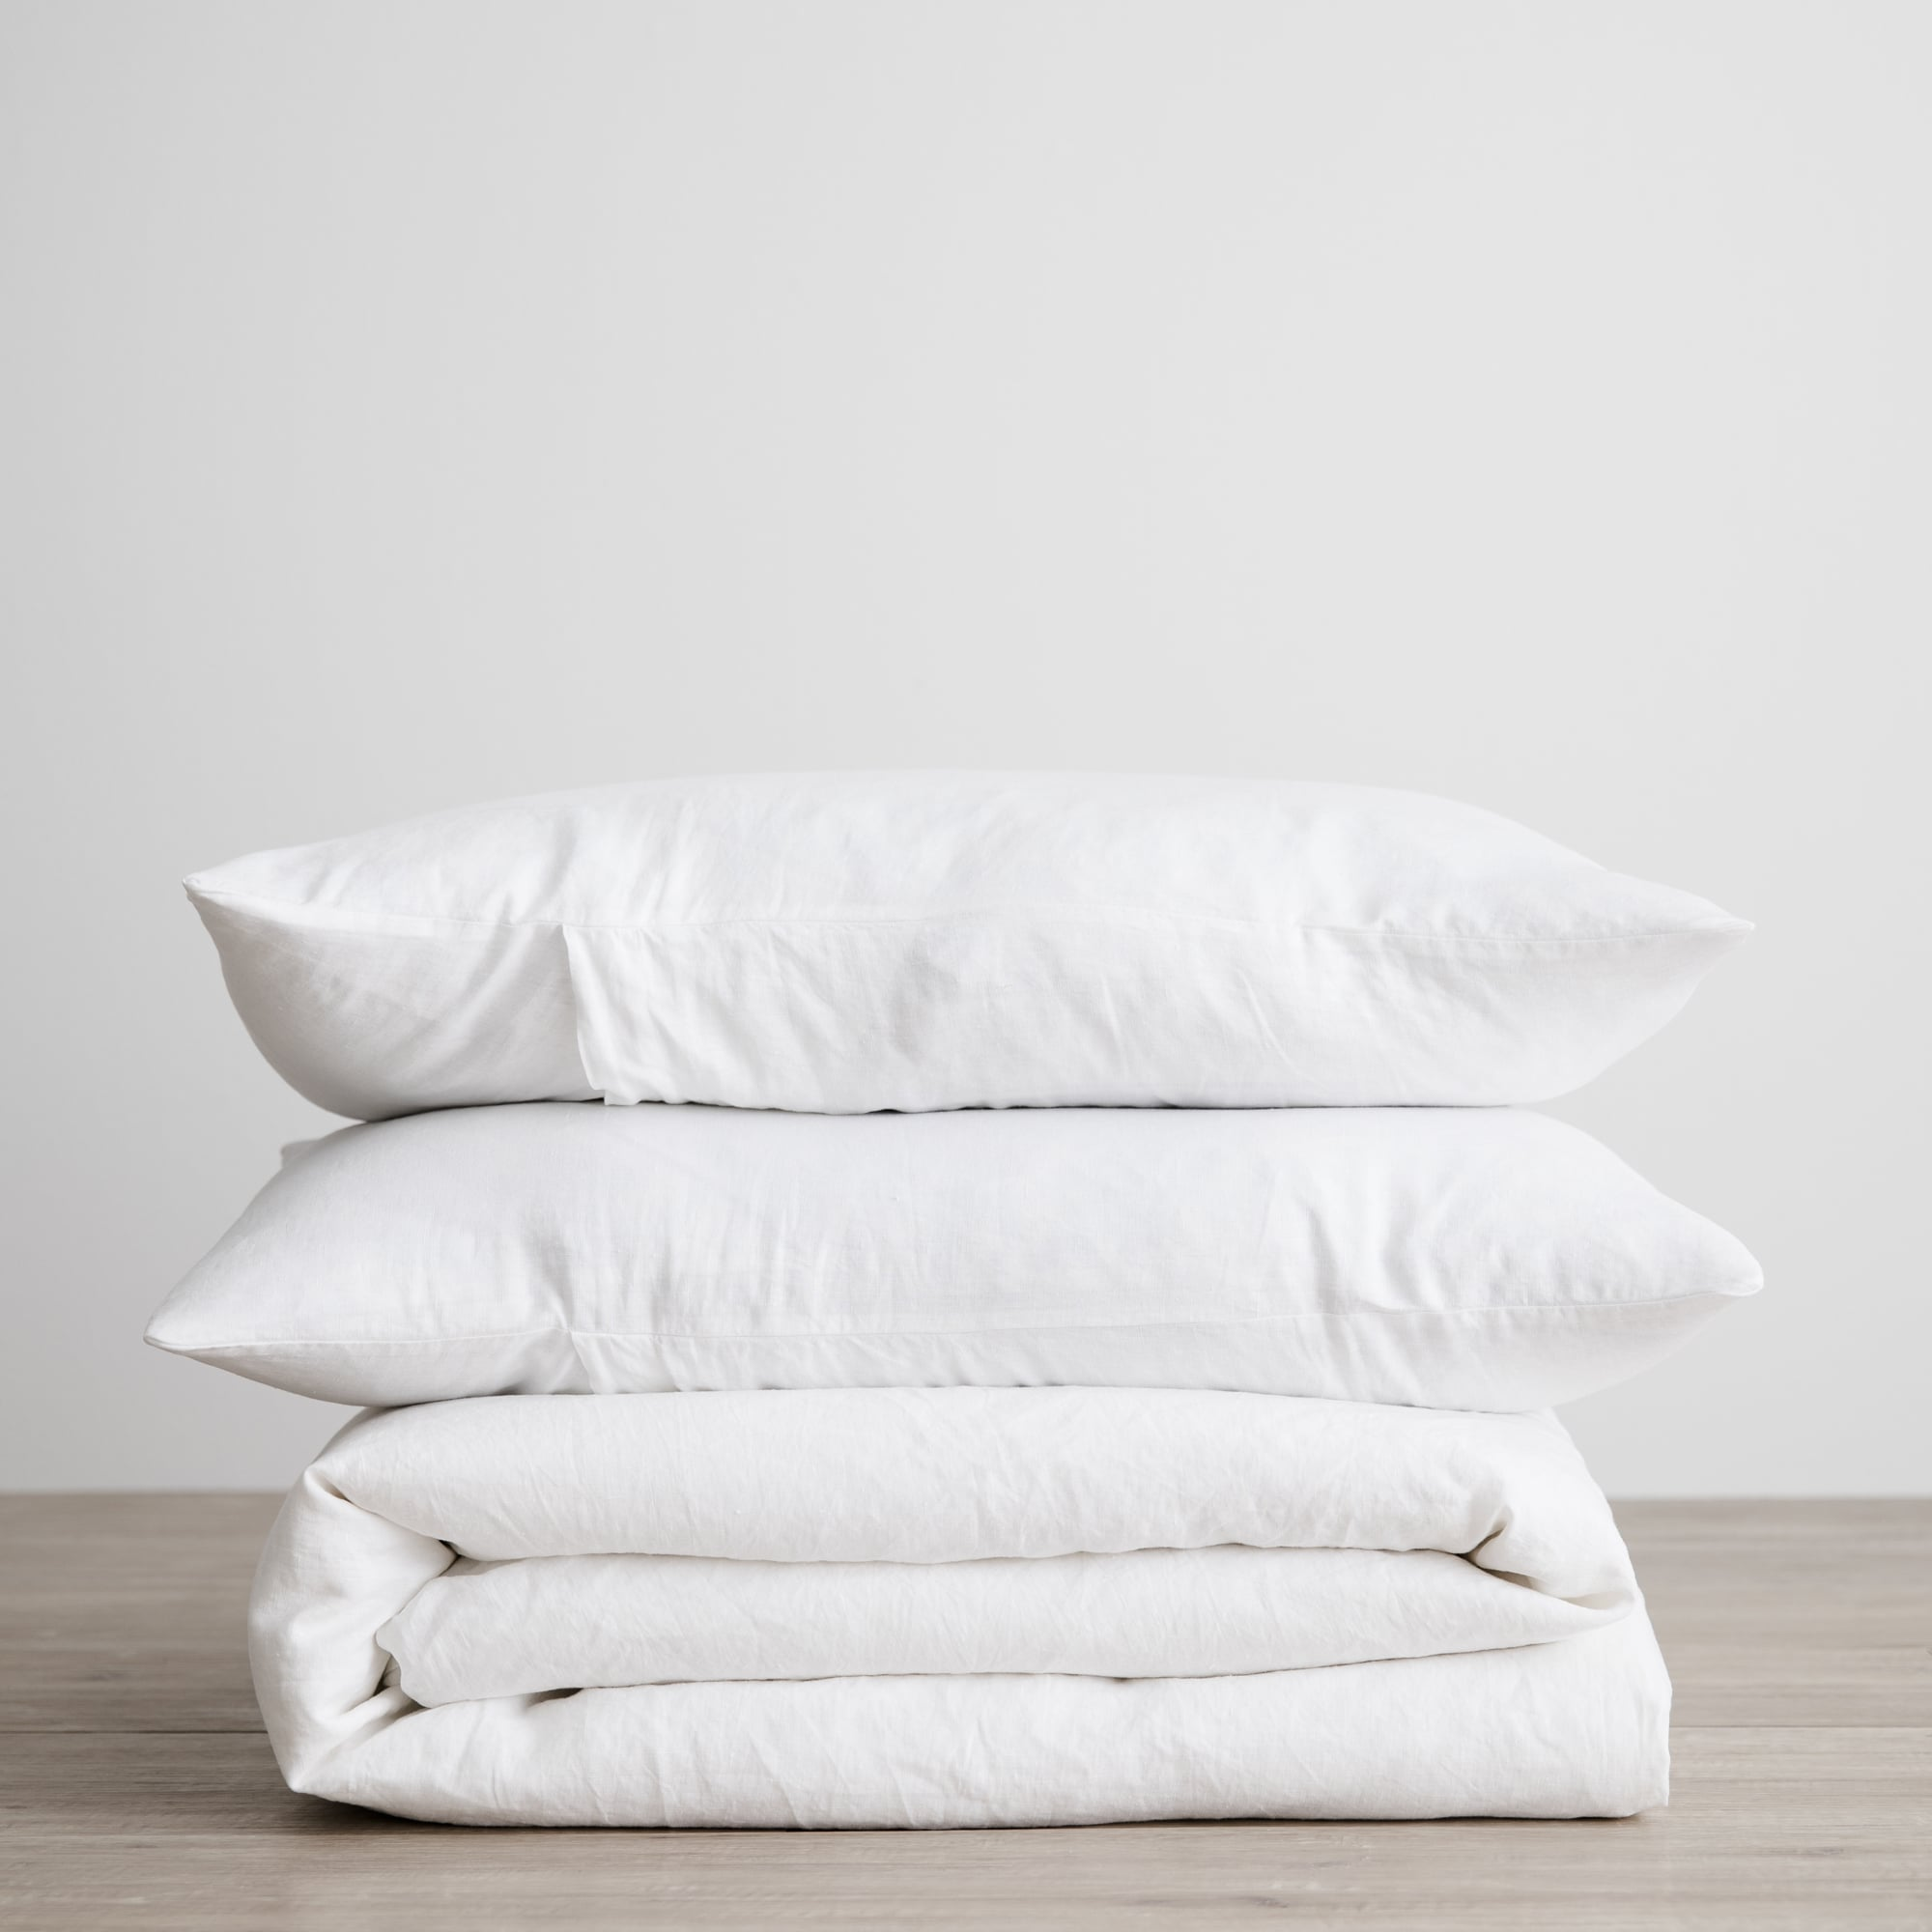 White linen duvet set from Monsoon Living Newcastle